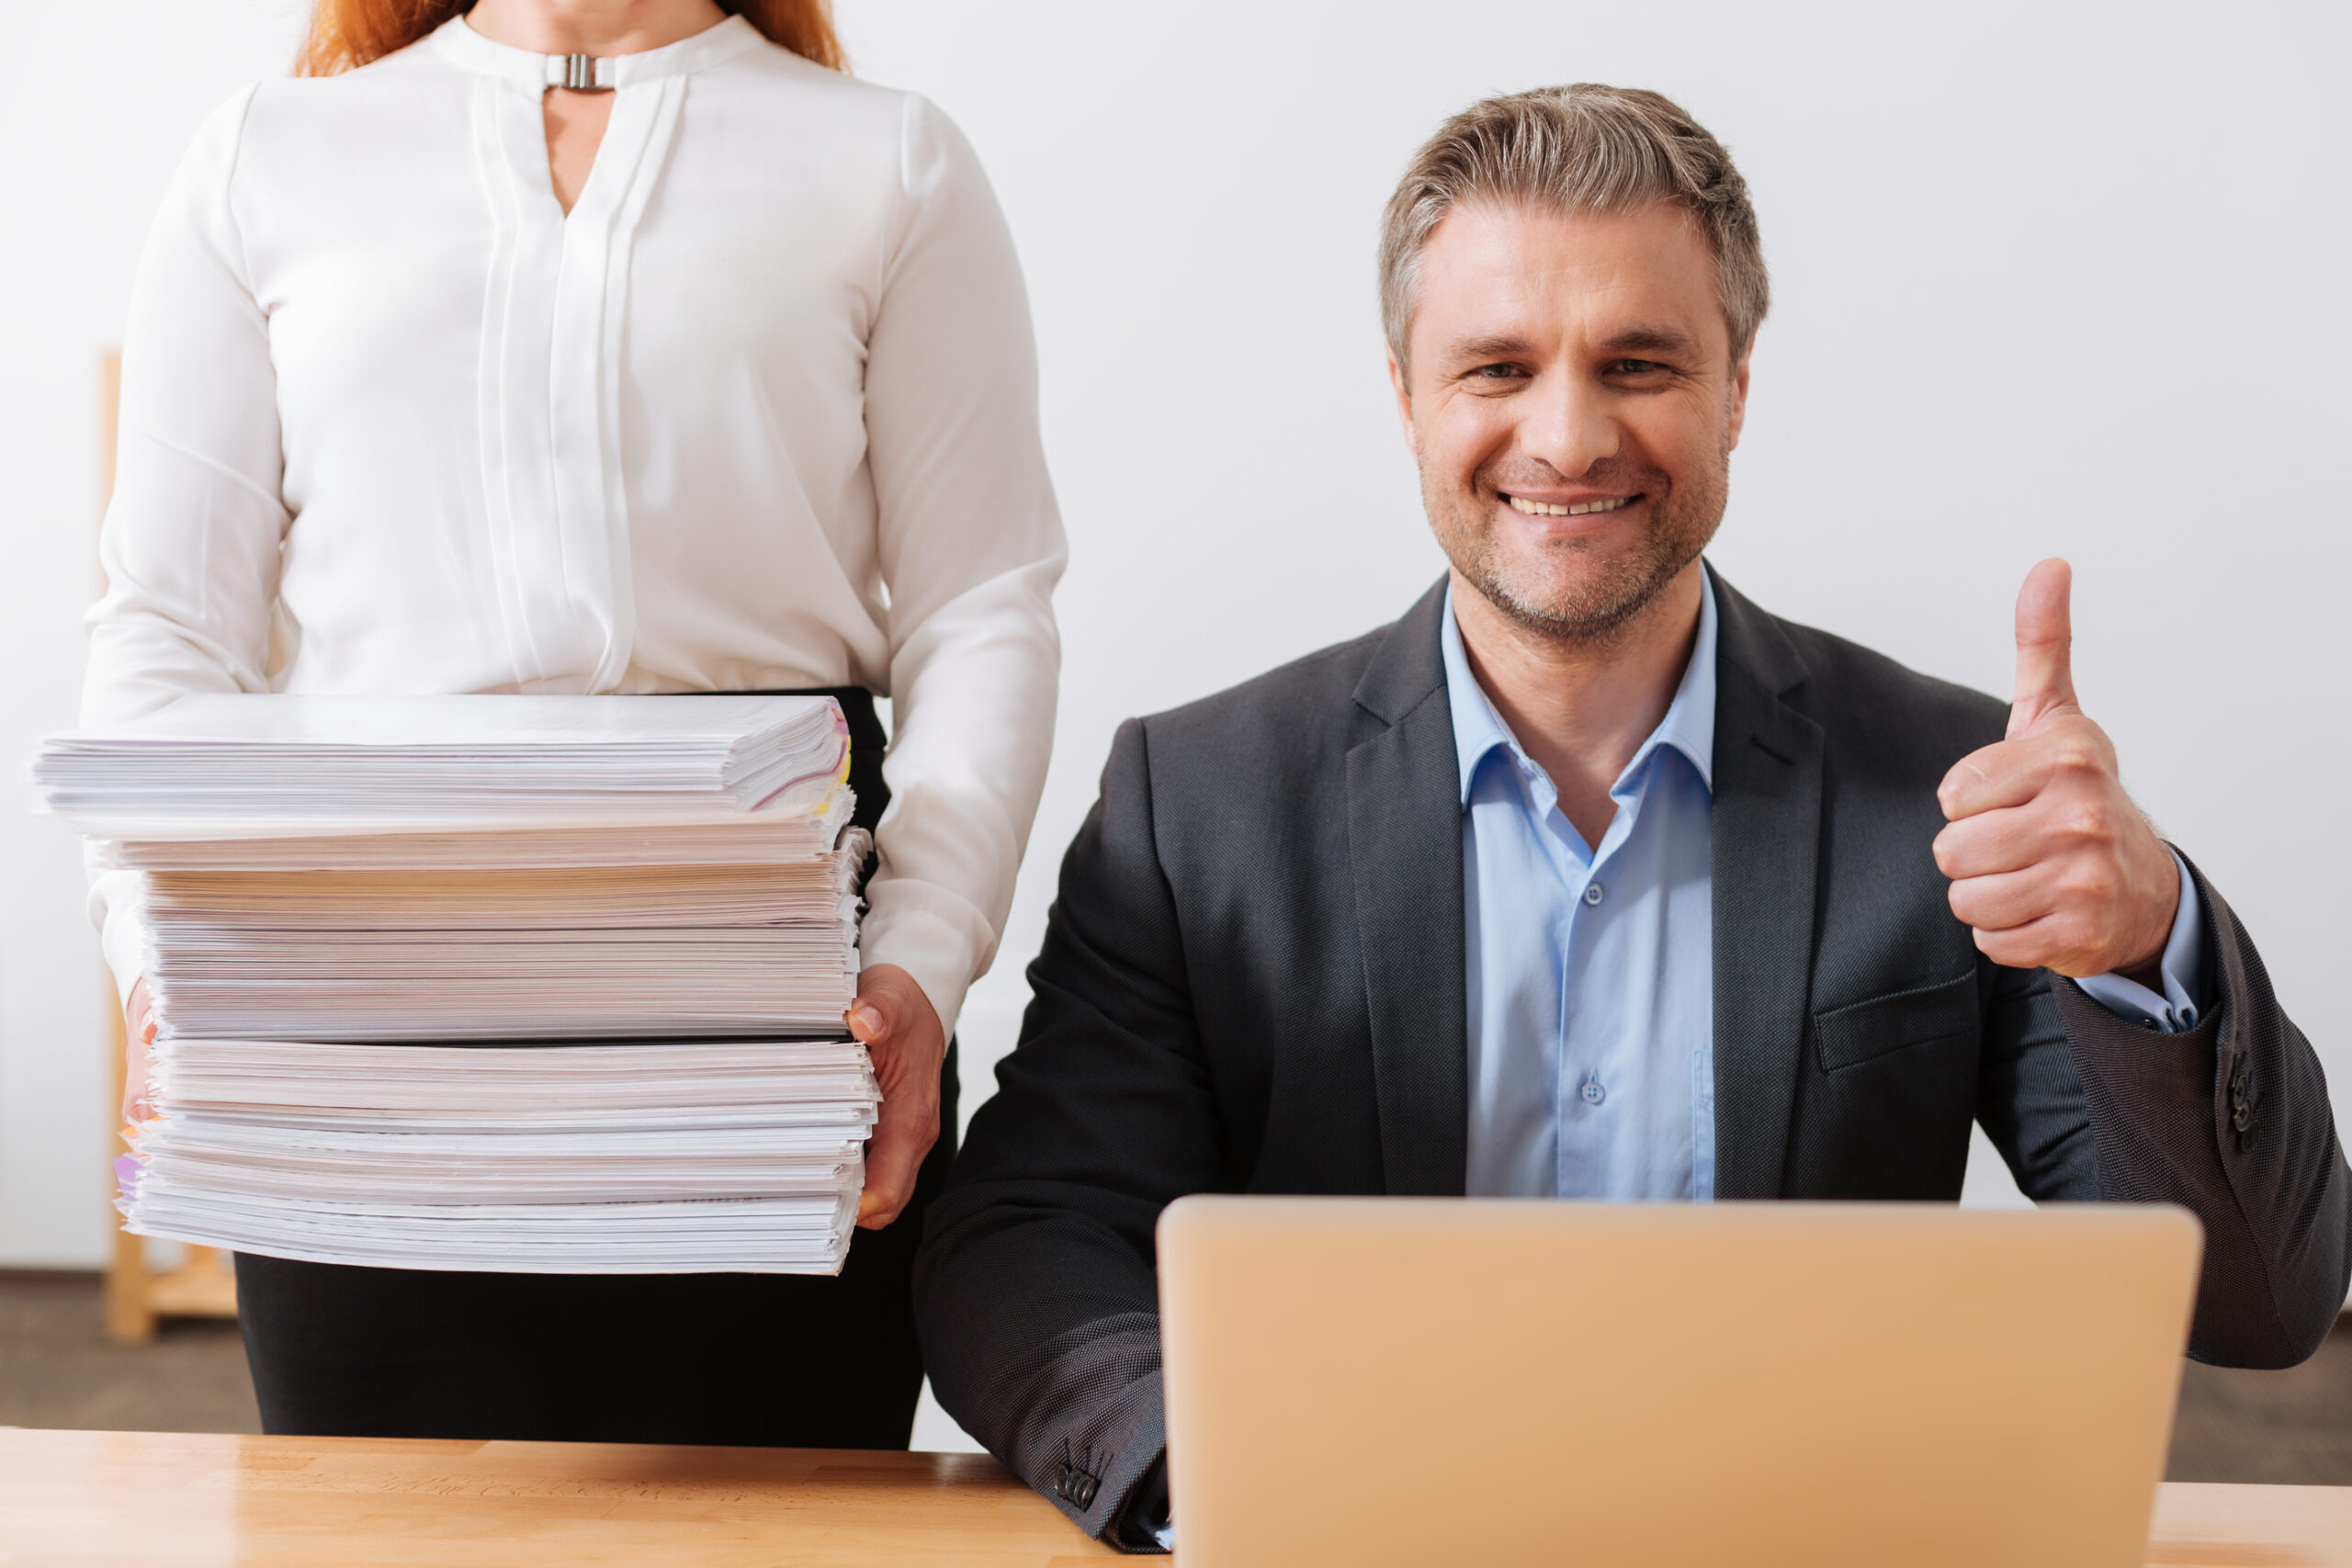 What Are the Best Ways to Monitor Employee Productivity?